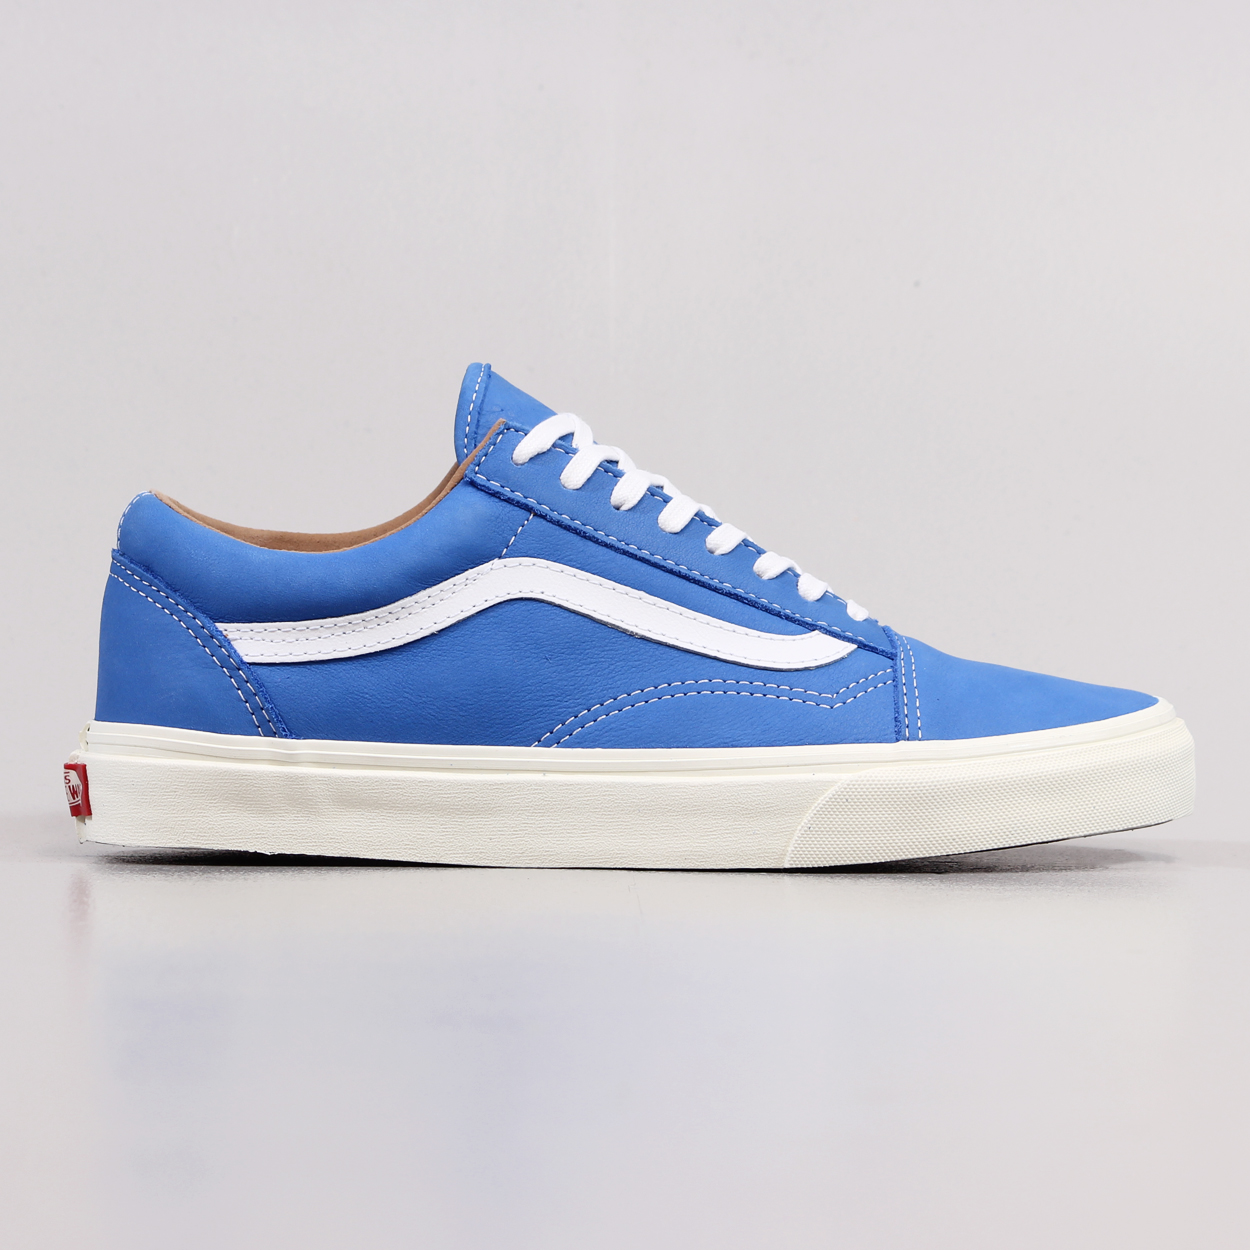 Shoes Vans Old Skool Reissue Shoes Classic Leather Daphne